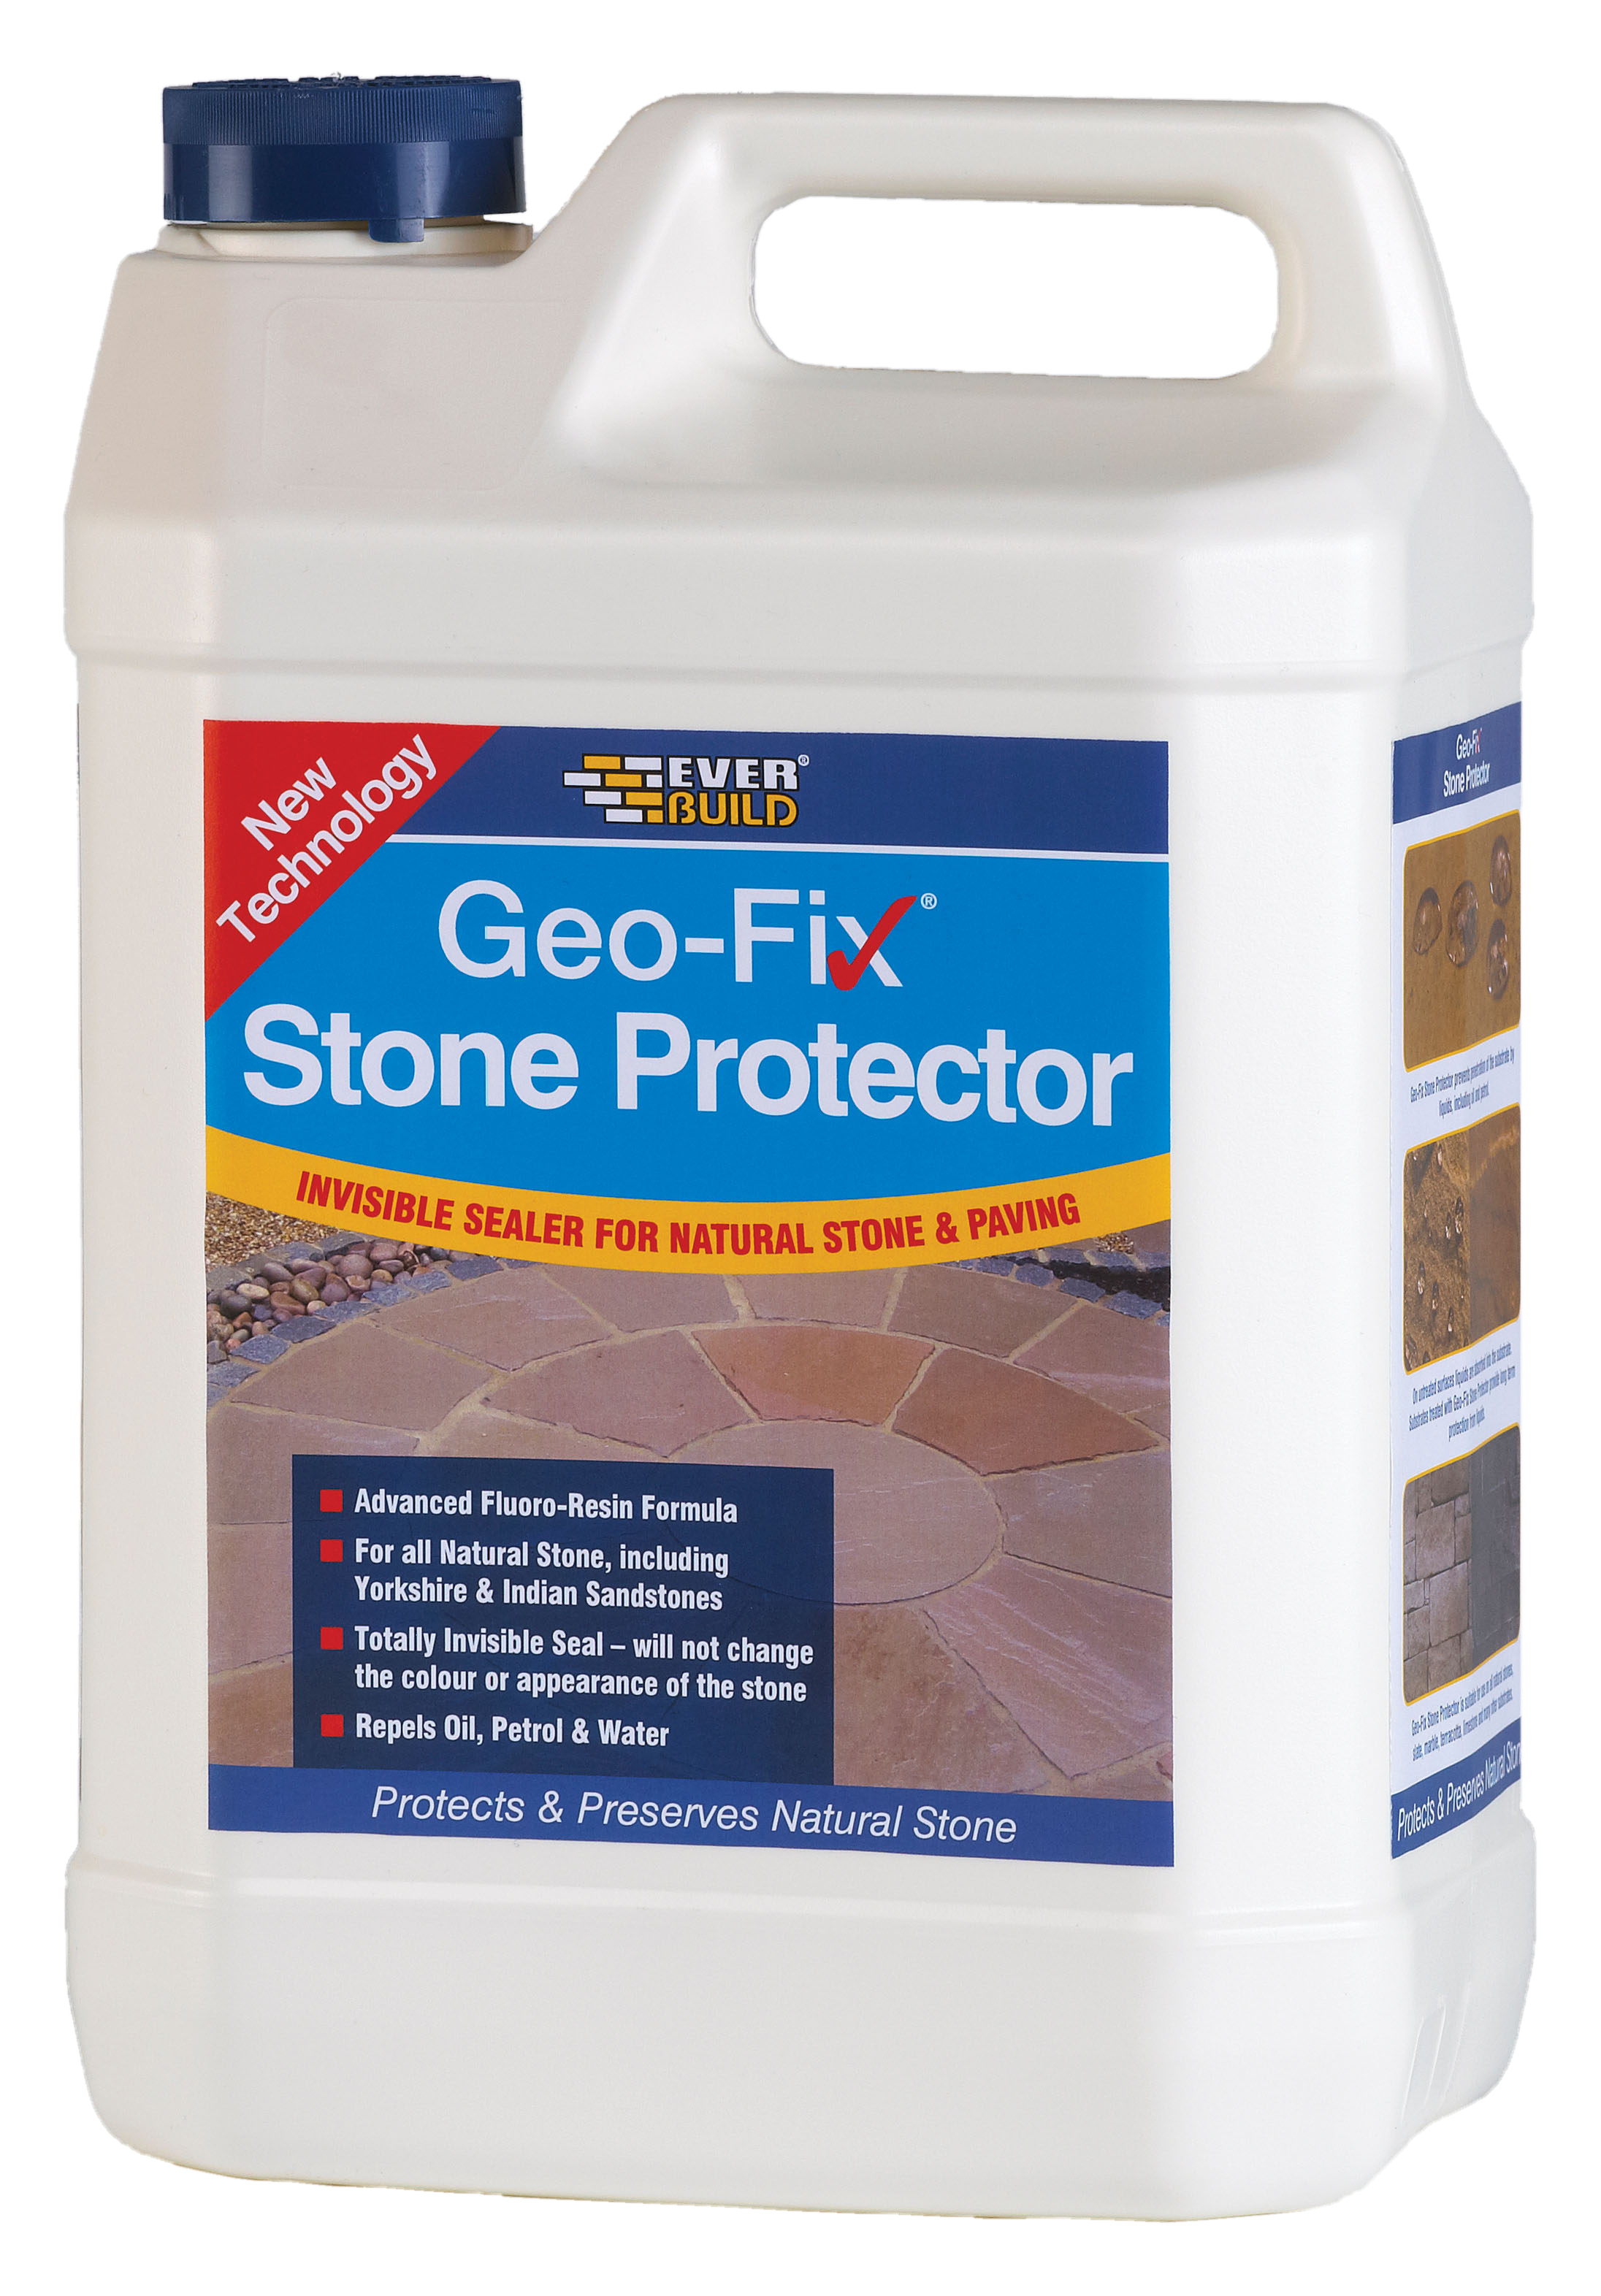 Geo-Fix Natural Stone Patio & Paving Sealer